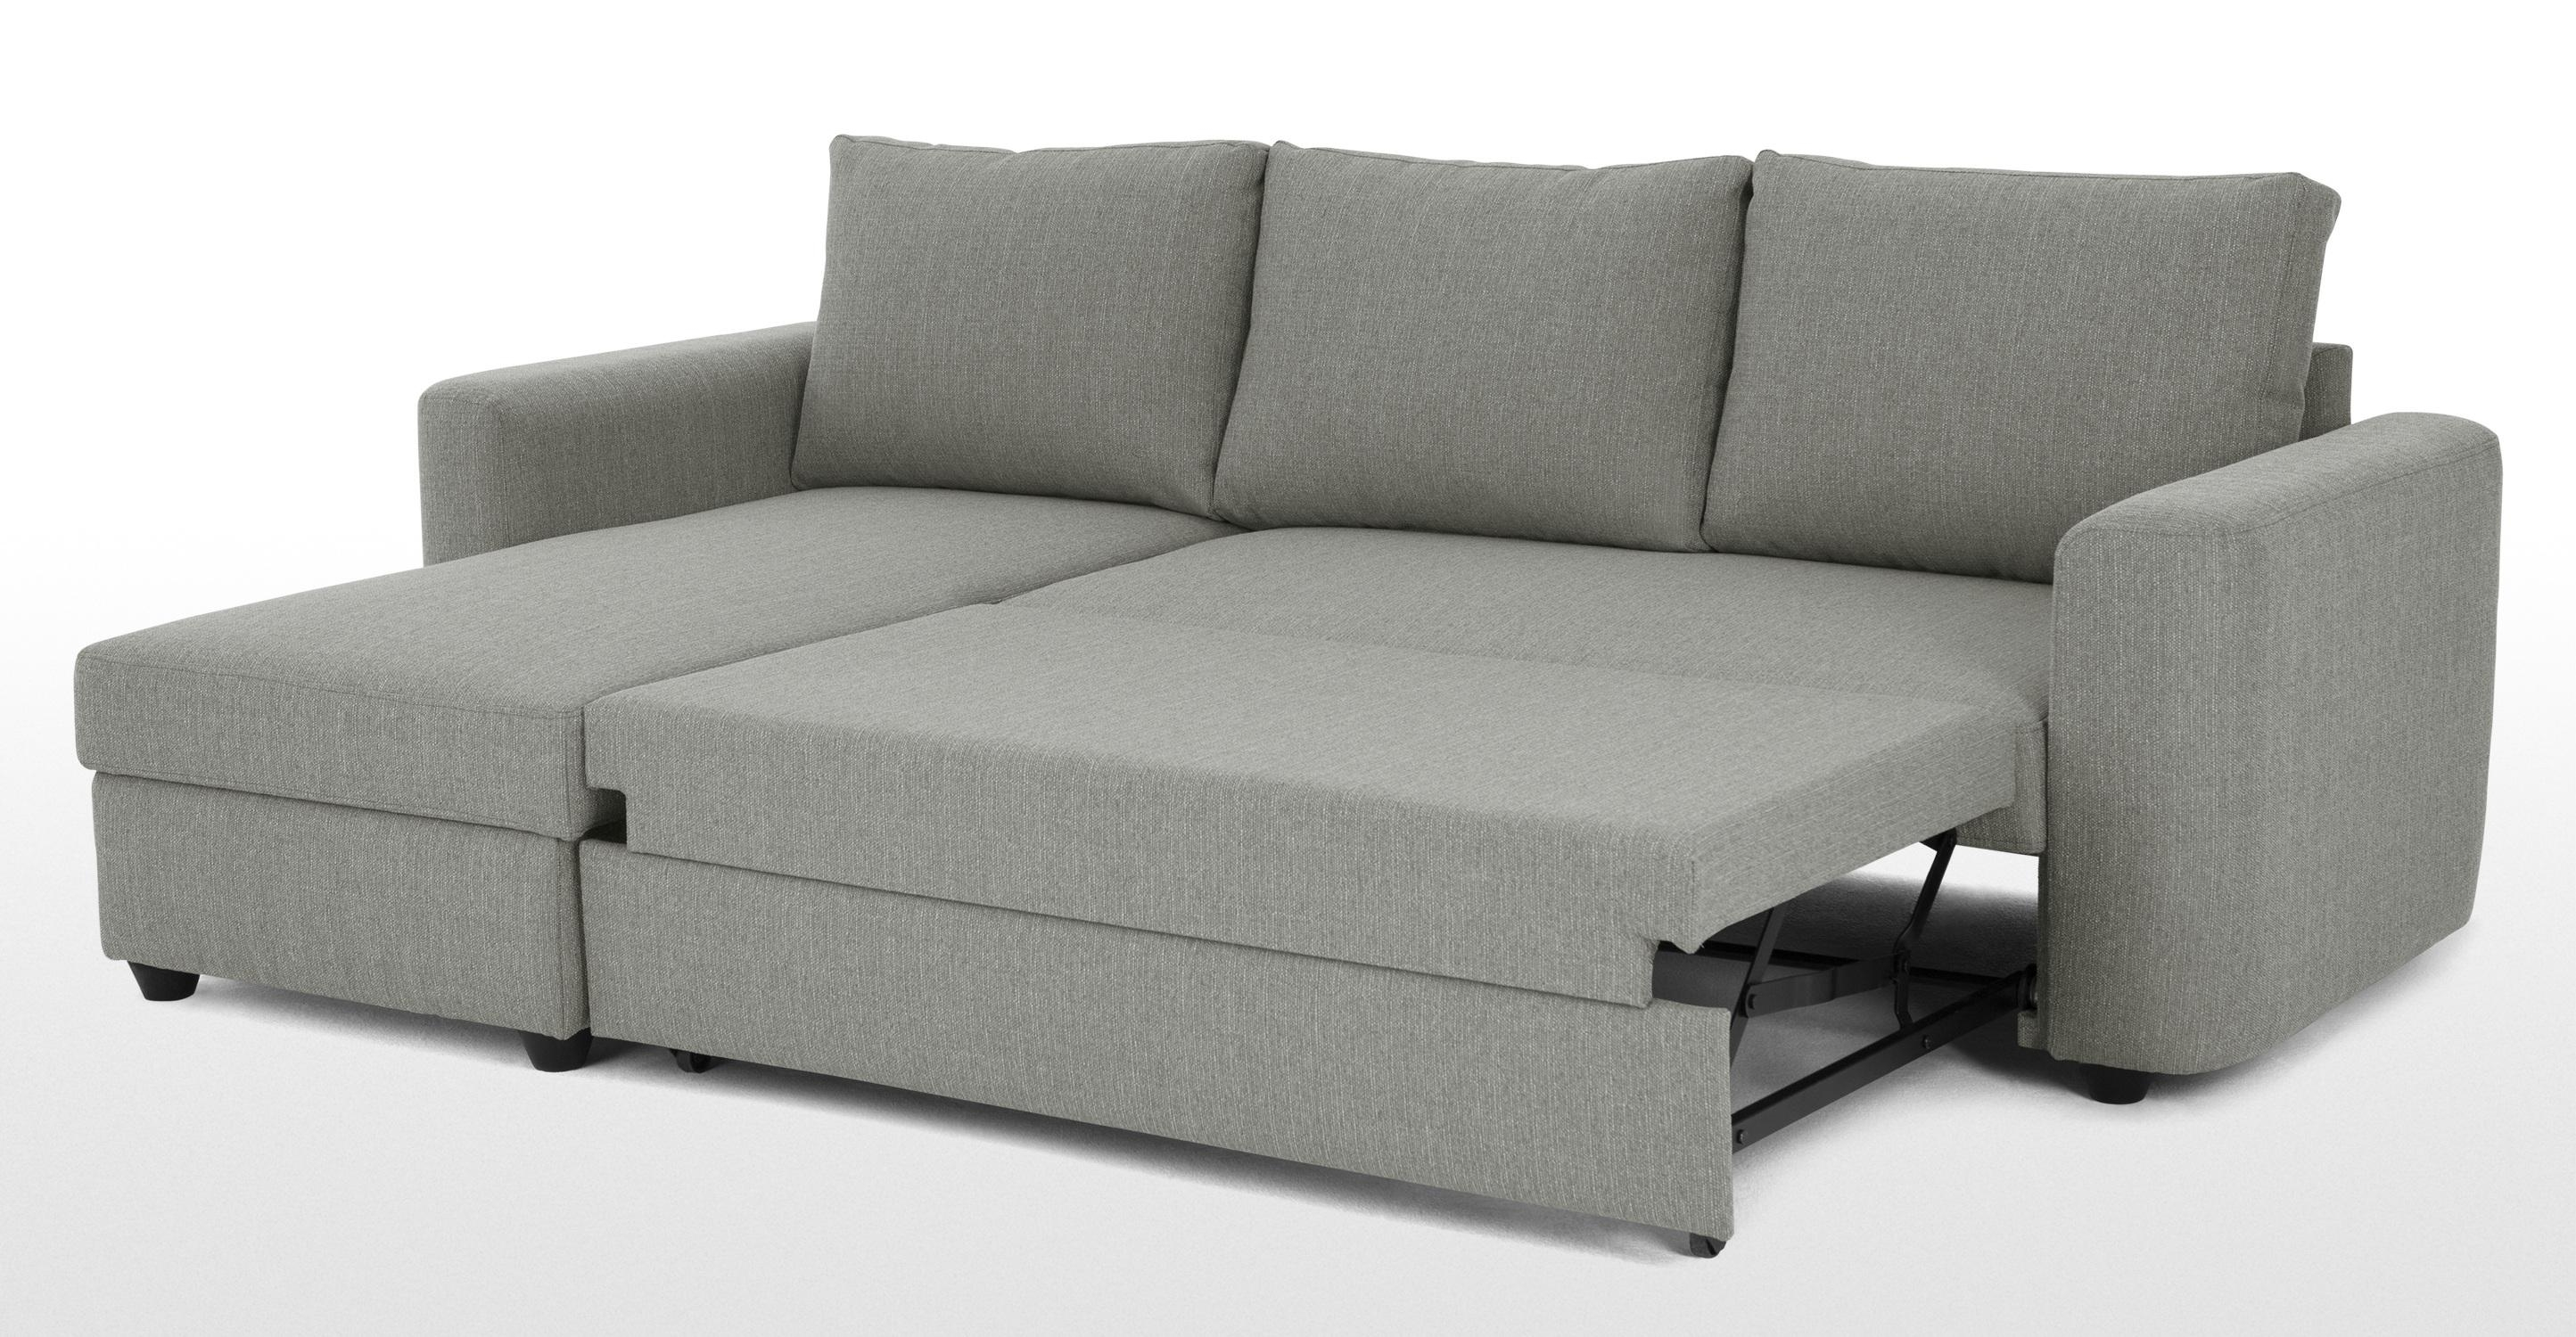 Cheap Sofa Bed With Storage | Furniture Fabulous Faux Leather Futon ...